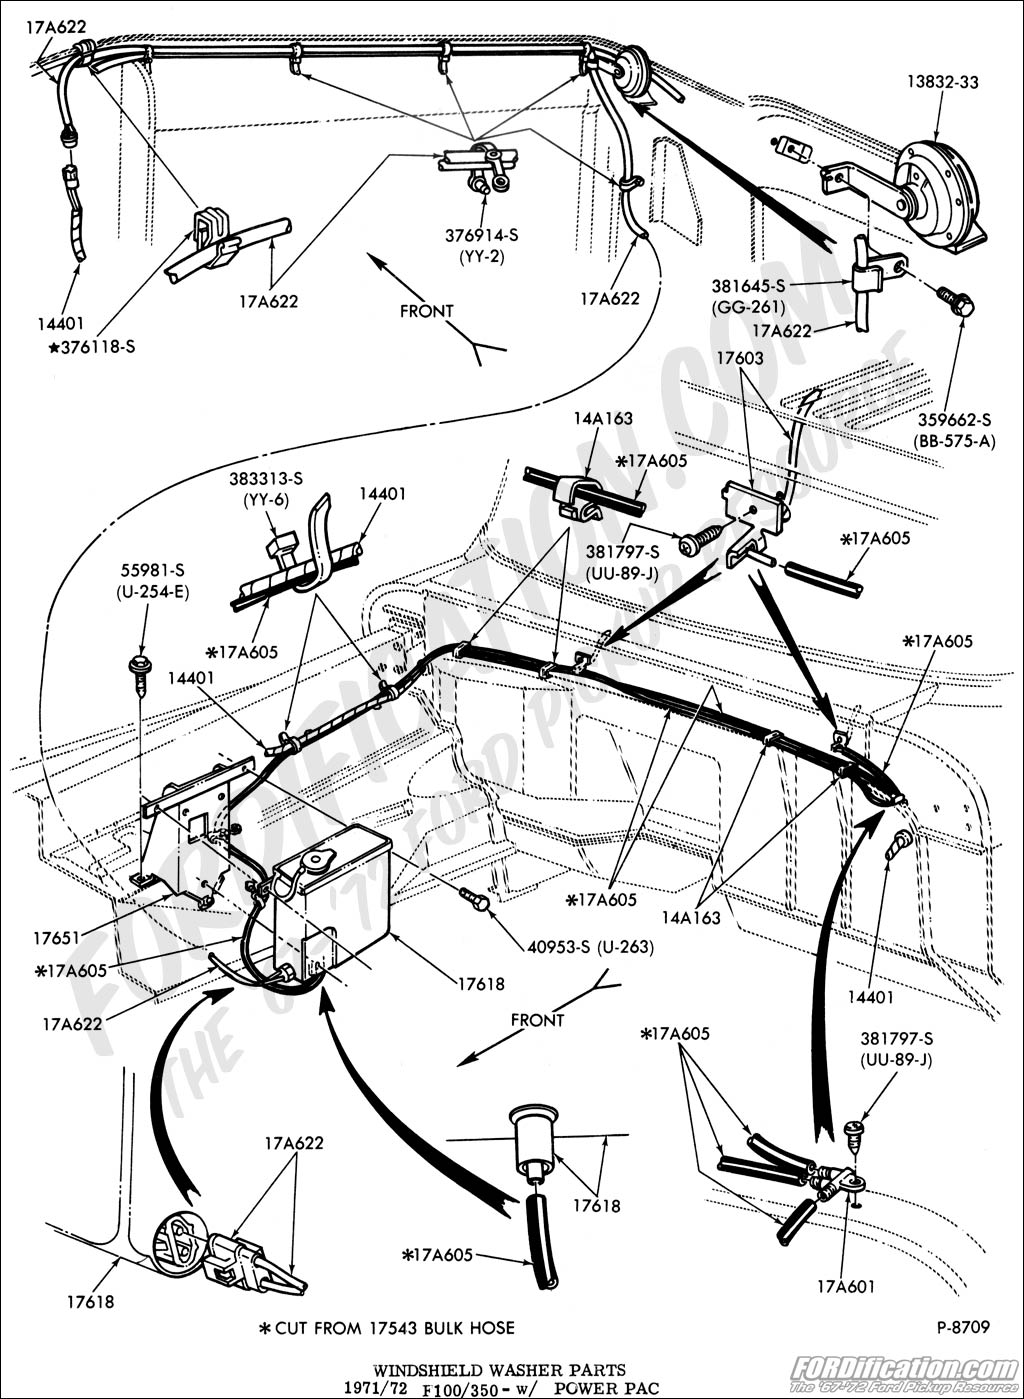 1994 f350 wiring diagram with Schematics I on 94 Ford E350 Wiring Diagram further 1998 Ford F 150 Heater Hose Diagram also Ford Powerstroke Fuel Pressure Sensor Location furthermore 89 F150 Selector Valve furthermore 2001 Ford F350 Driving Light Relay.